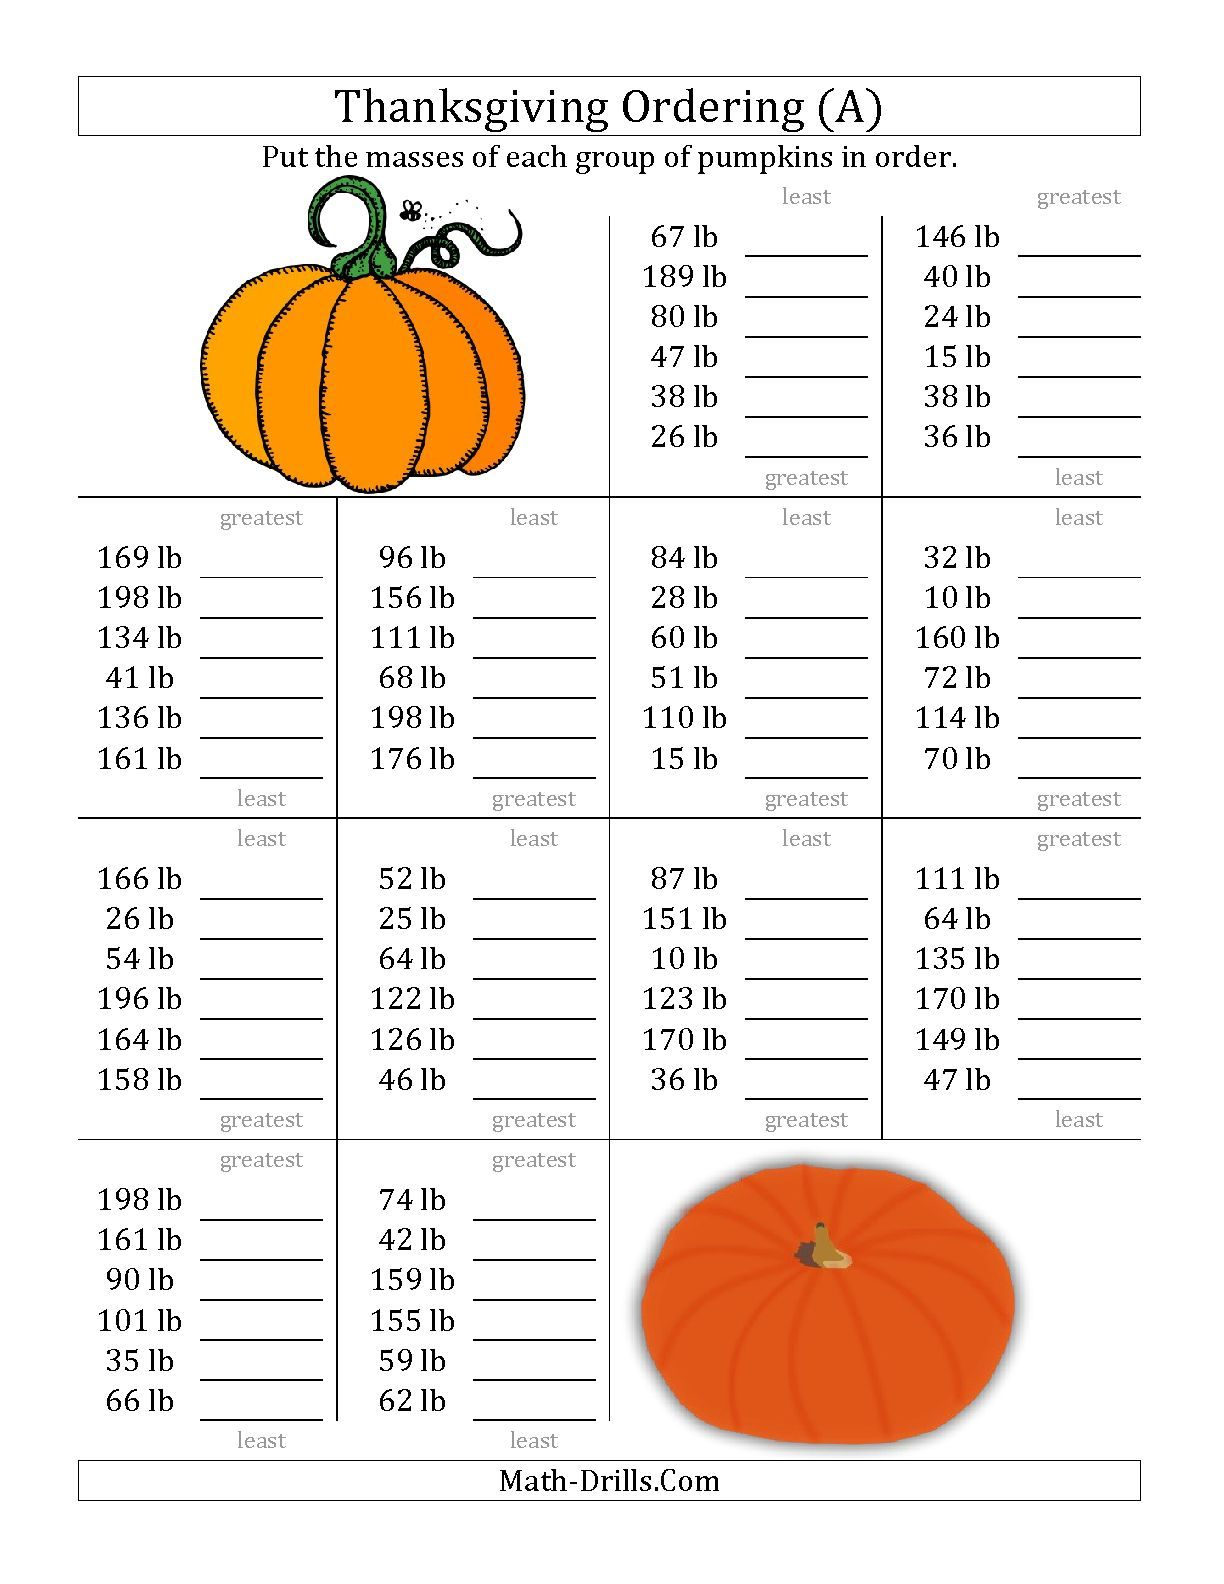 worksheet Fun Math Worksheets For Middle School the ordering pumpkin masses in pounds a math worksheet from thanksgiving worksheet